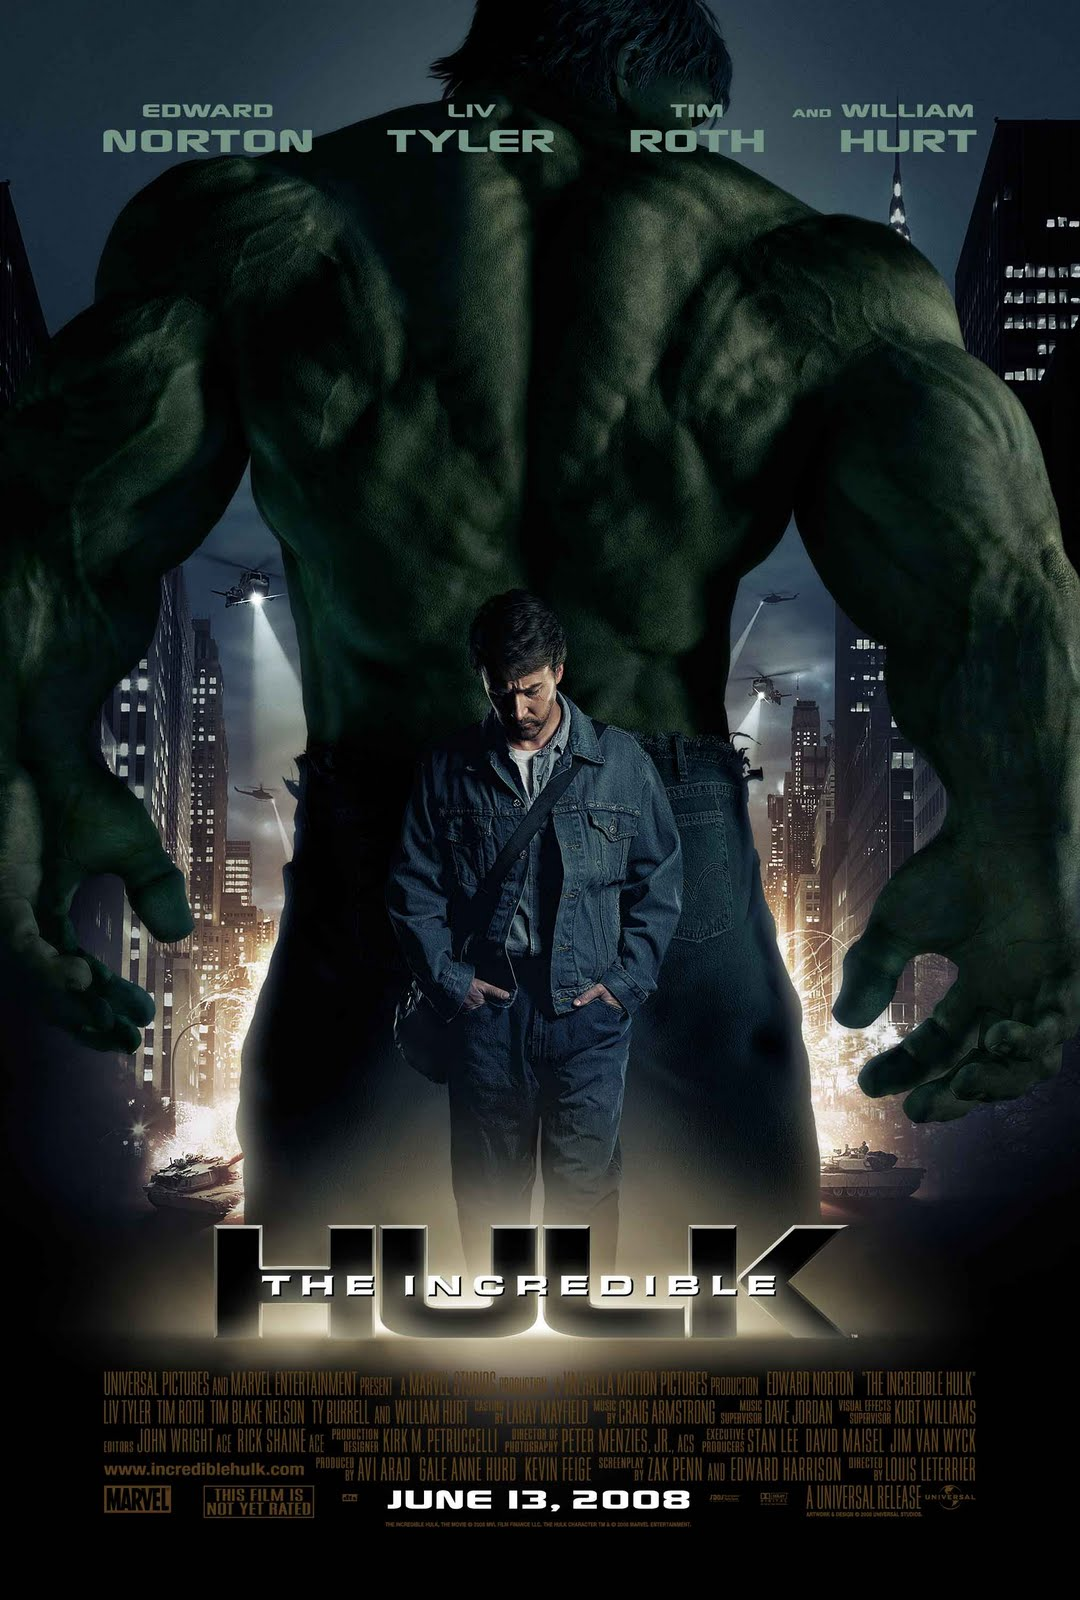 http://1.bp.blogspot.com/_U-_MB3ct83I/TA_l-3nA1VI/AAAAAAAAFd8/cwHnbC1Lgsw/s1600/incredible-hulk-poster-big.jpg